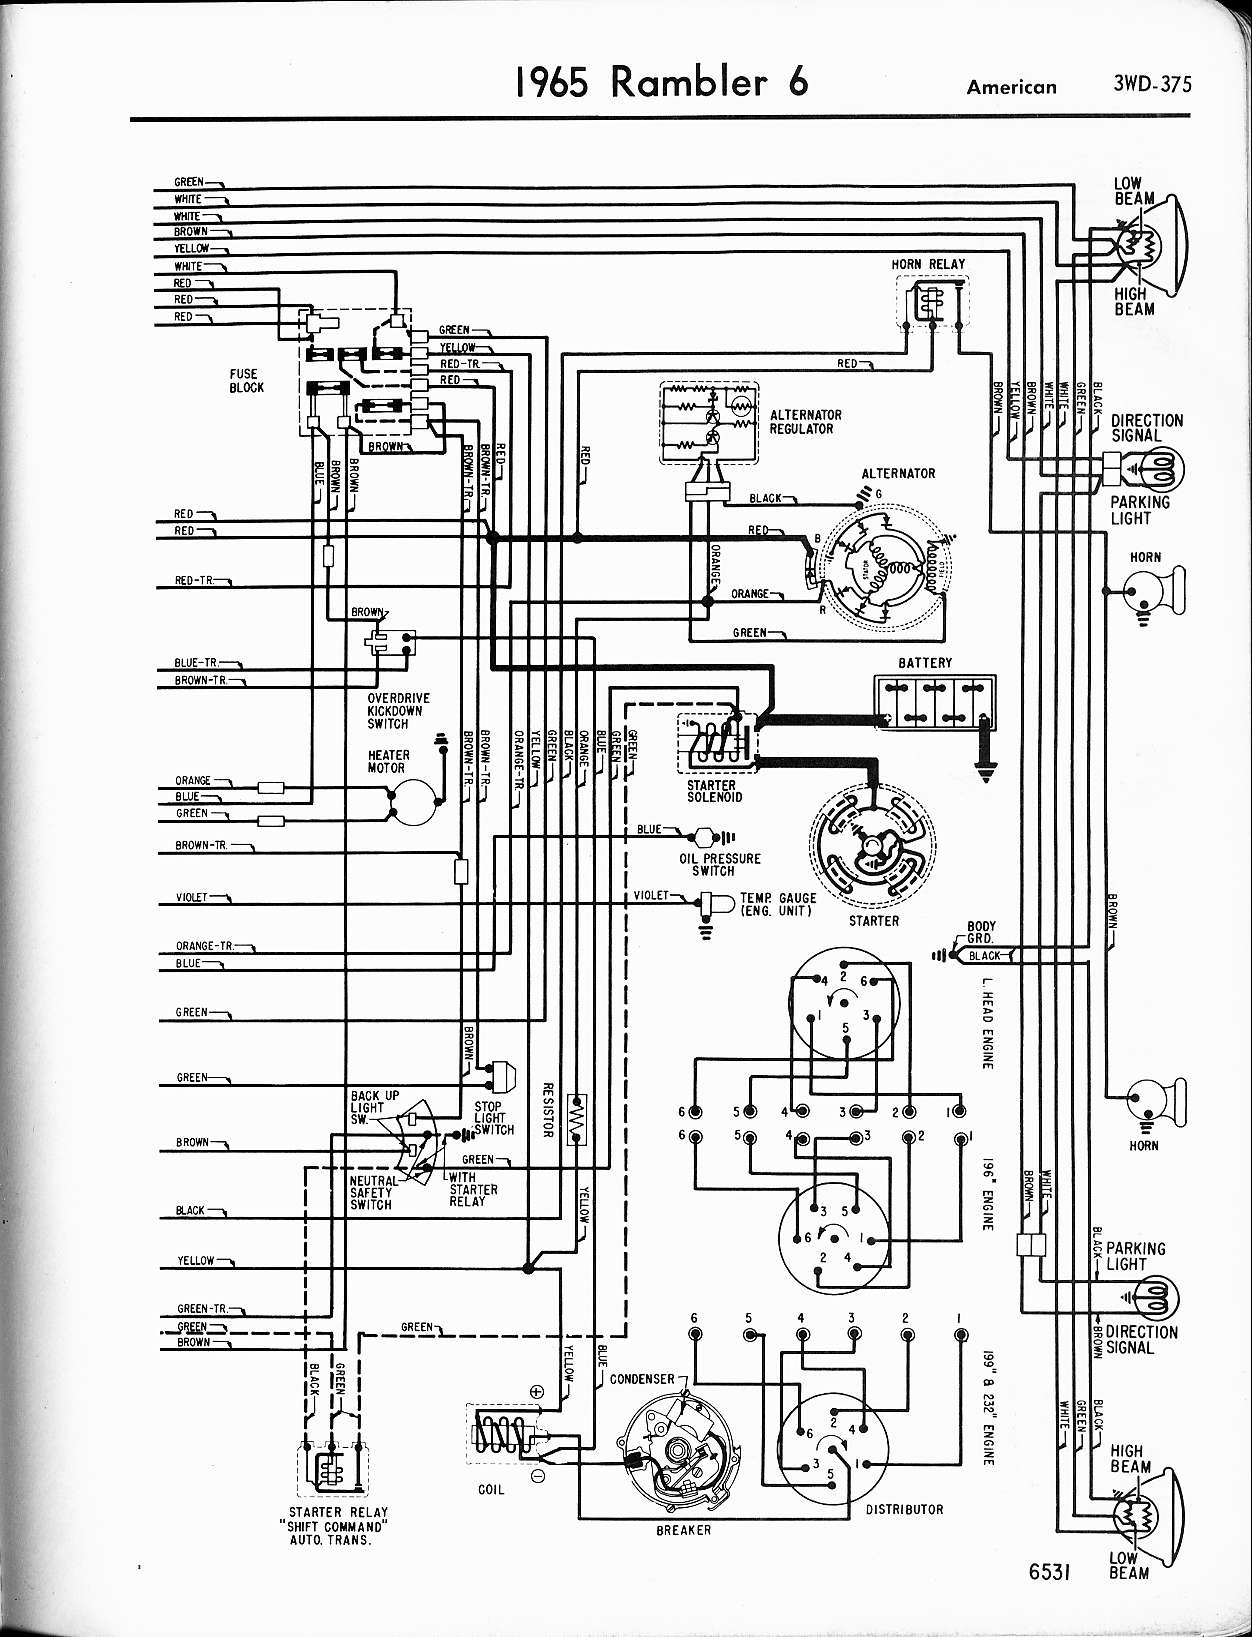 back up light switch 65 classic - the amc forum - page 1 2002 550 classic wiring diagram